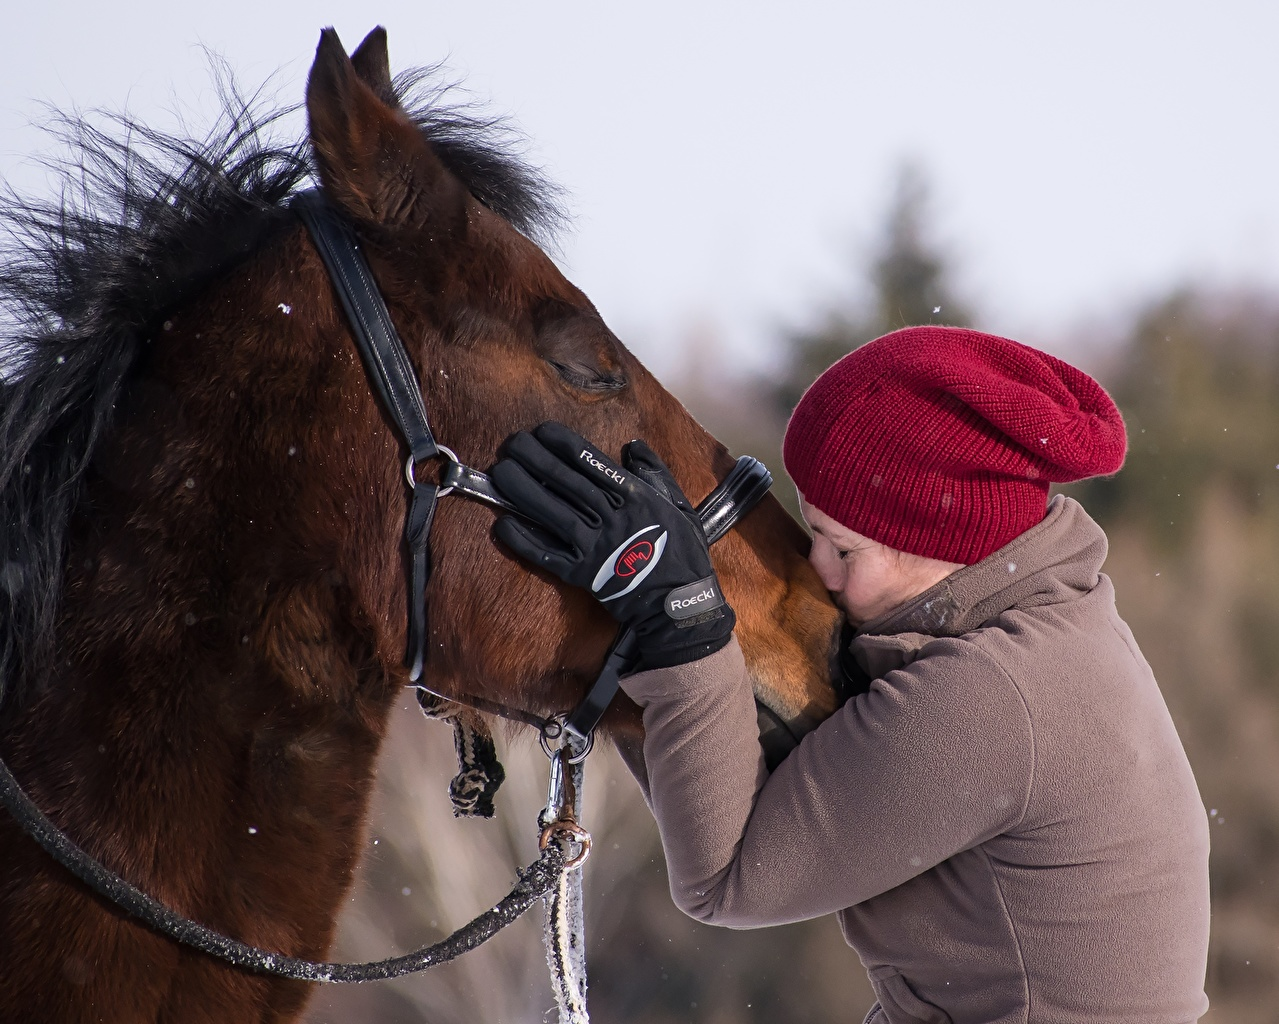 Desktop Wallpapers Horses Glove kisses 2 Girls Winter hat Hands horse Kiss kissing Two female young woman